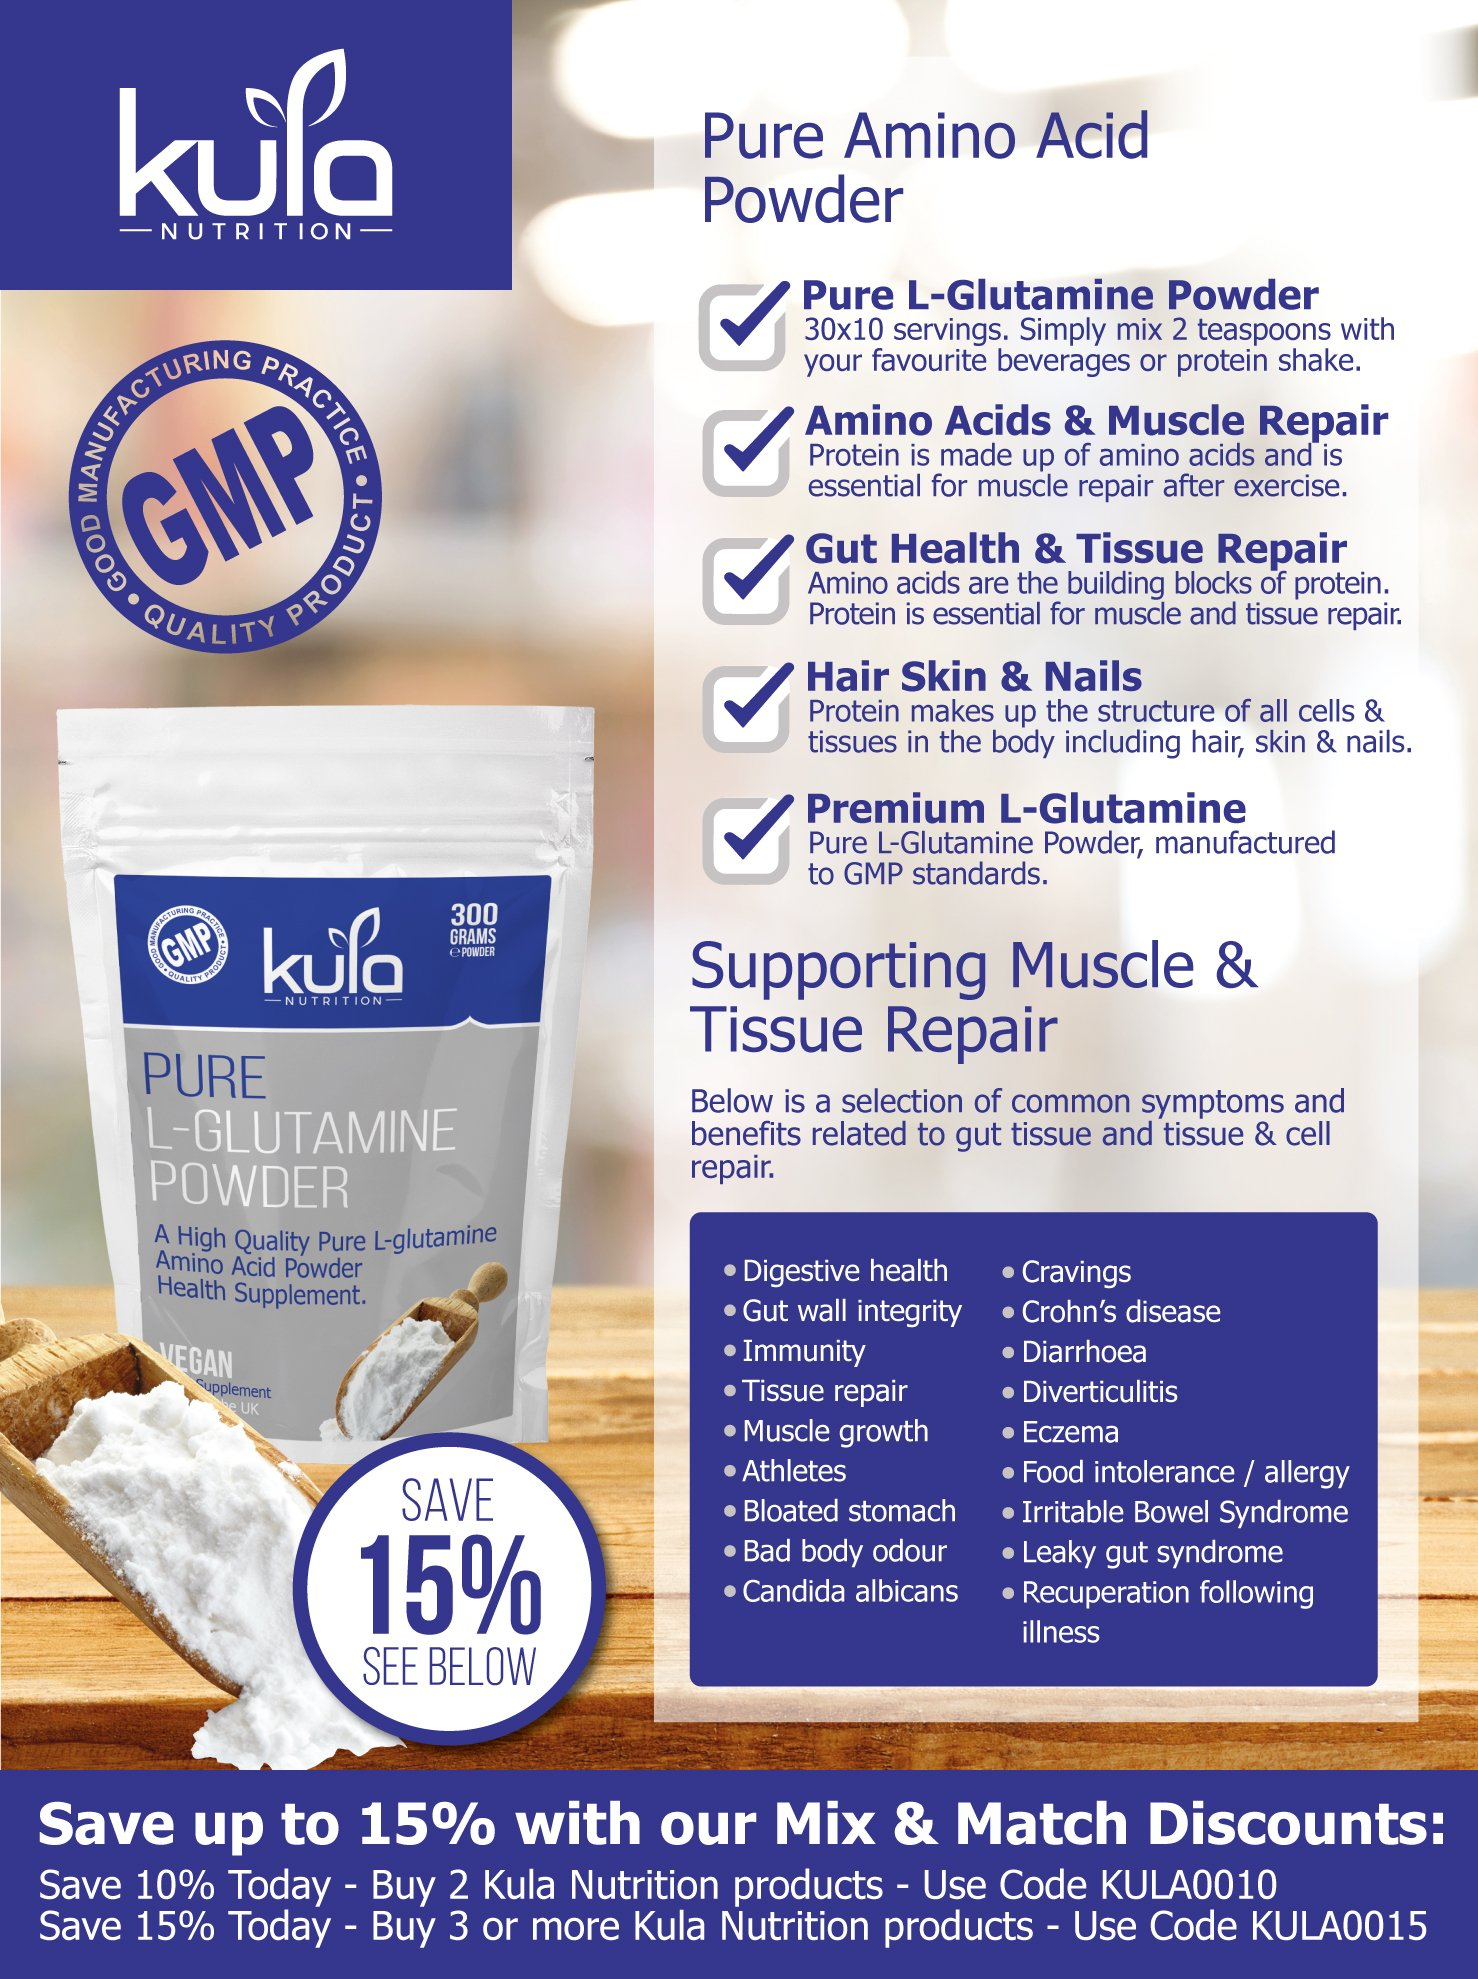 81ZmEN9oBFL - Kula Nutrition Pure L Glutamine Powder - 300g (60 Servings) - Amino Acid Powder, Protein Building Blocks - Supplement…